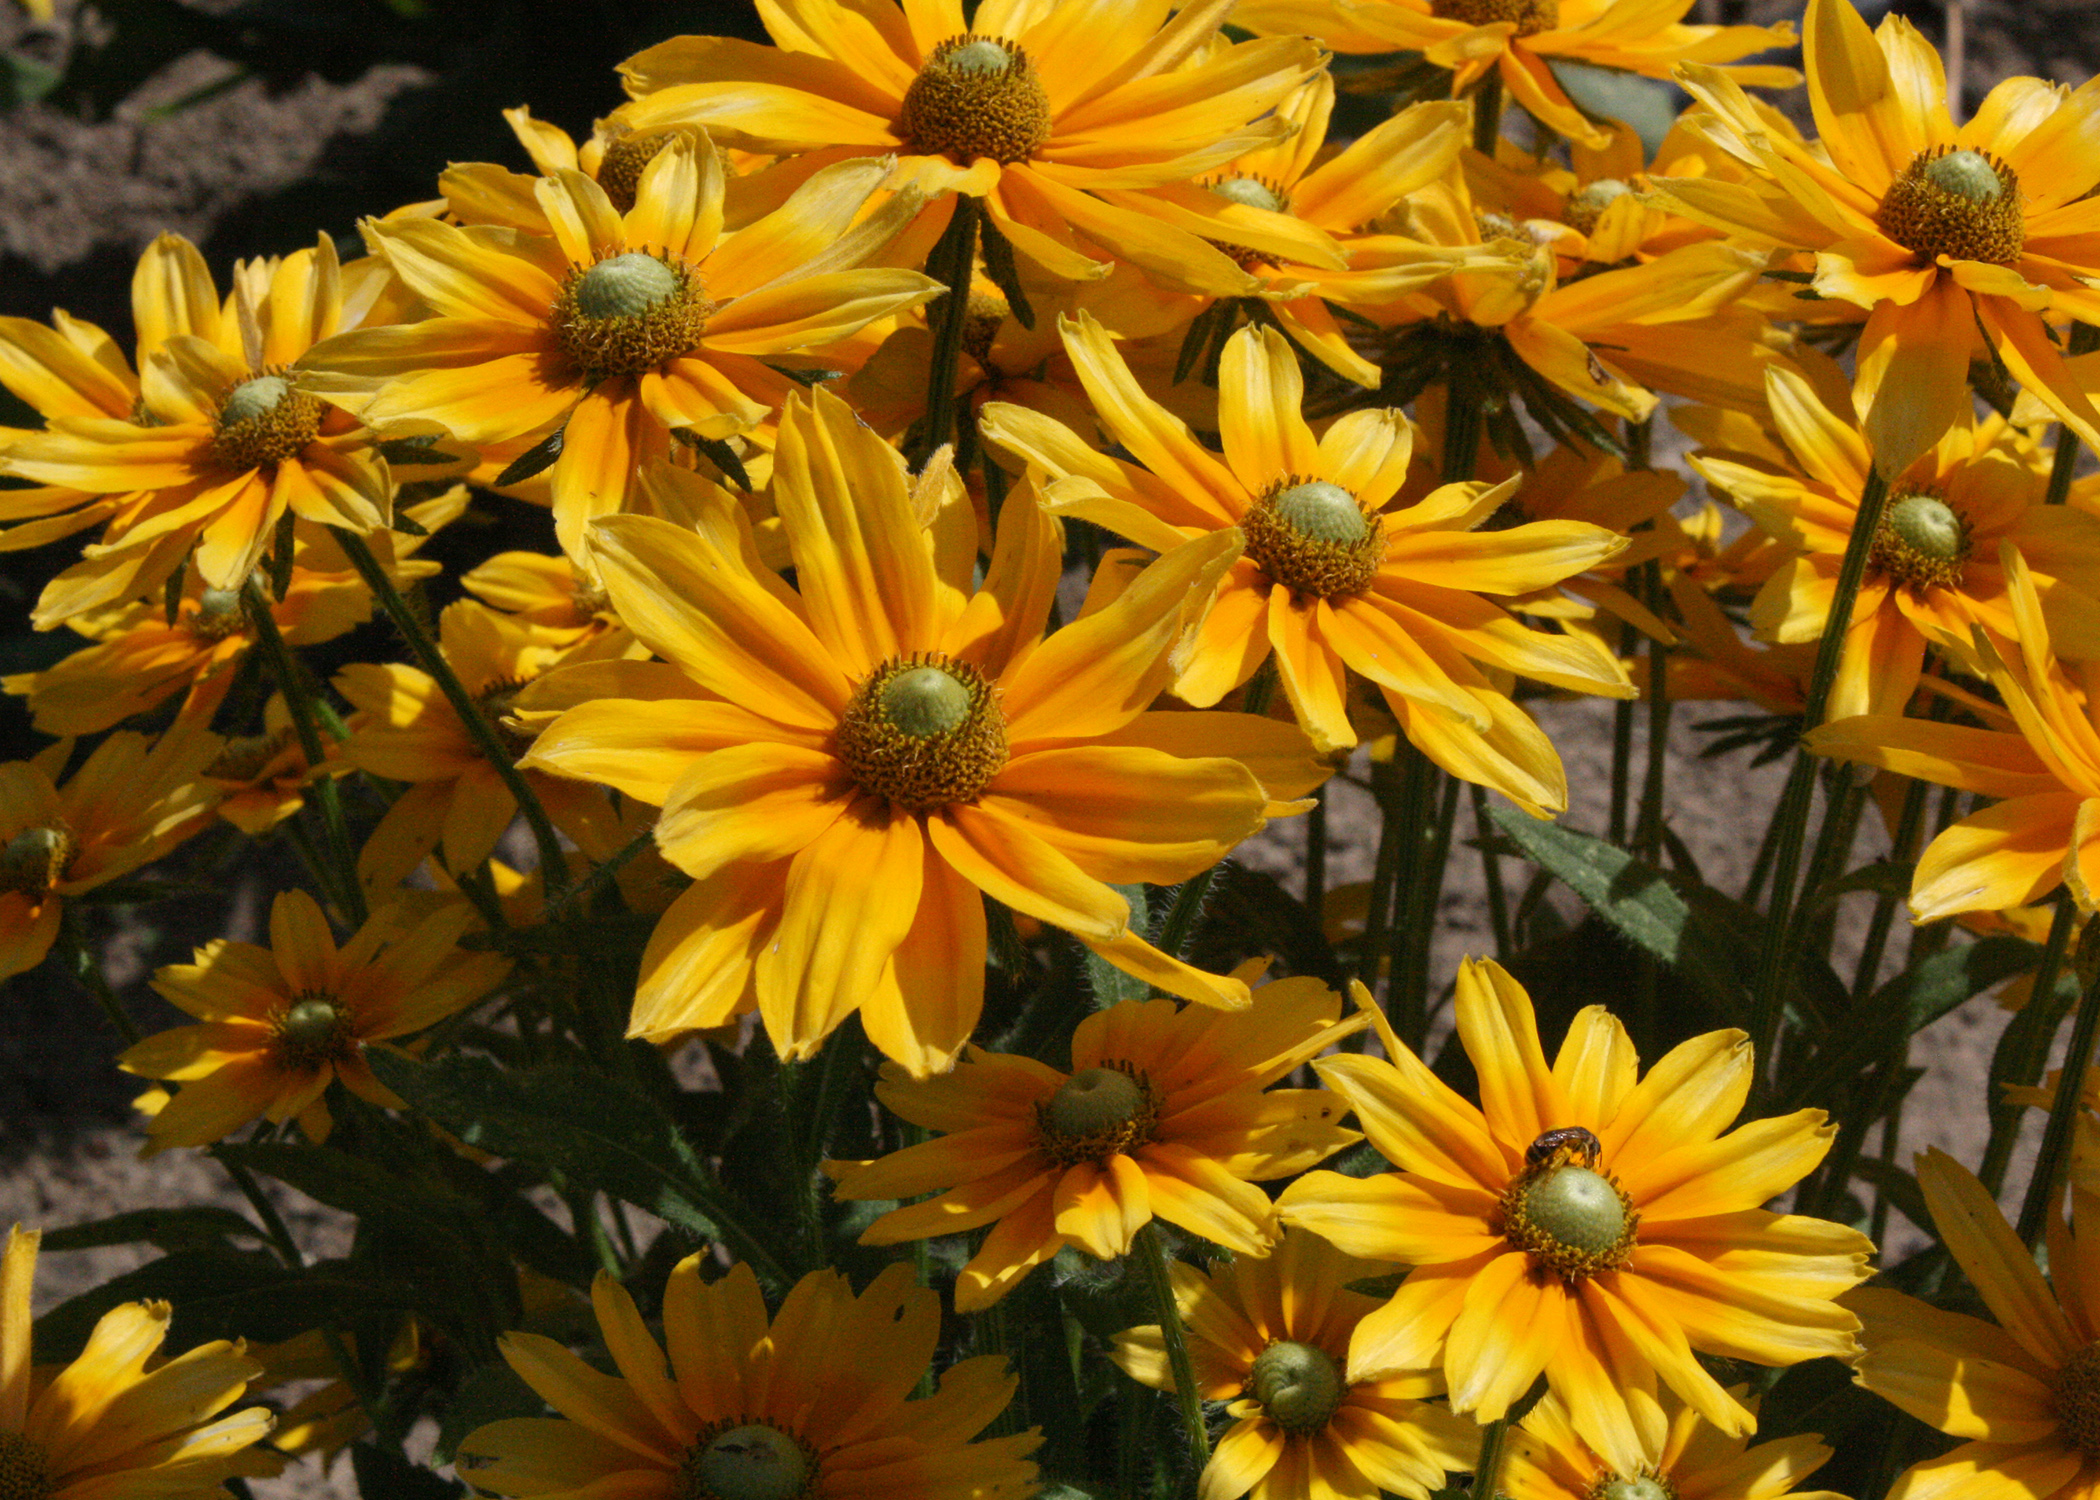 Make spring rudbeckia choices before christmas mississippi state several bright yellow flowers with green centers are displayed in the sun mightylinksfo